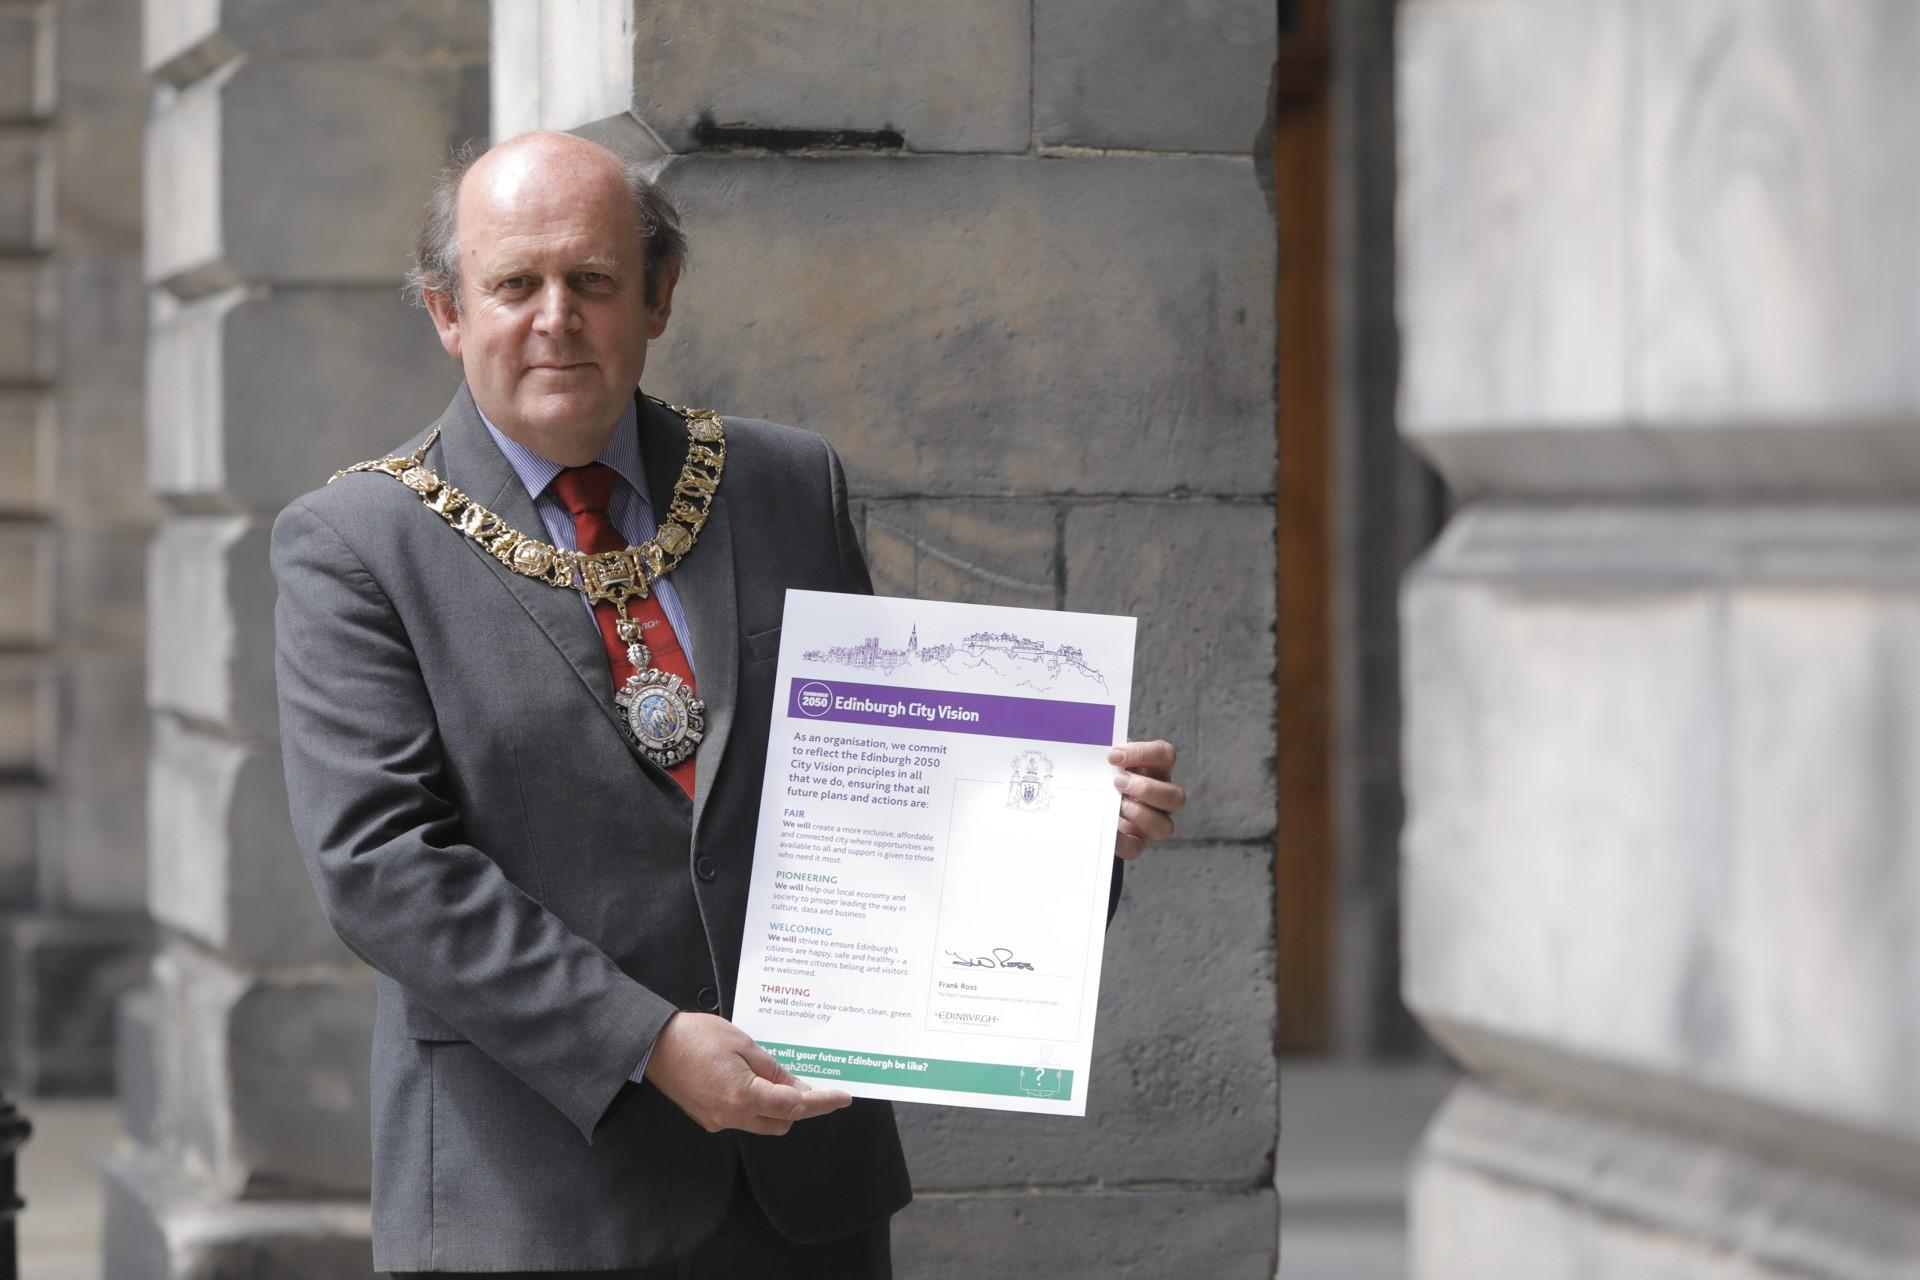 Landscape lord provost with city vision charter outside city chambers credit city of edinburgh council